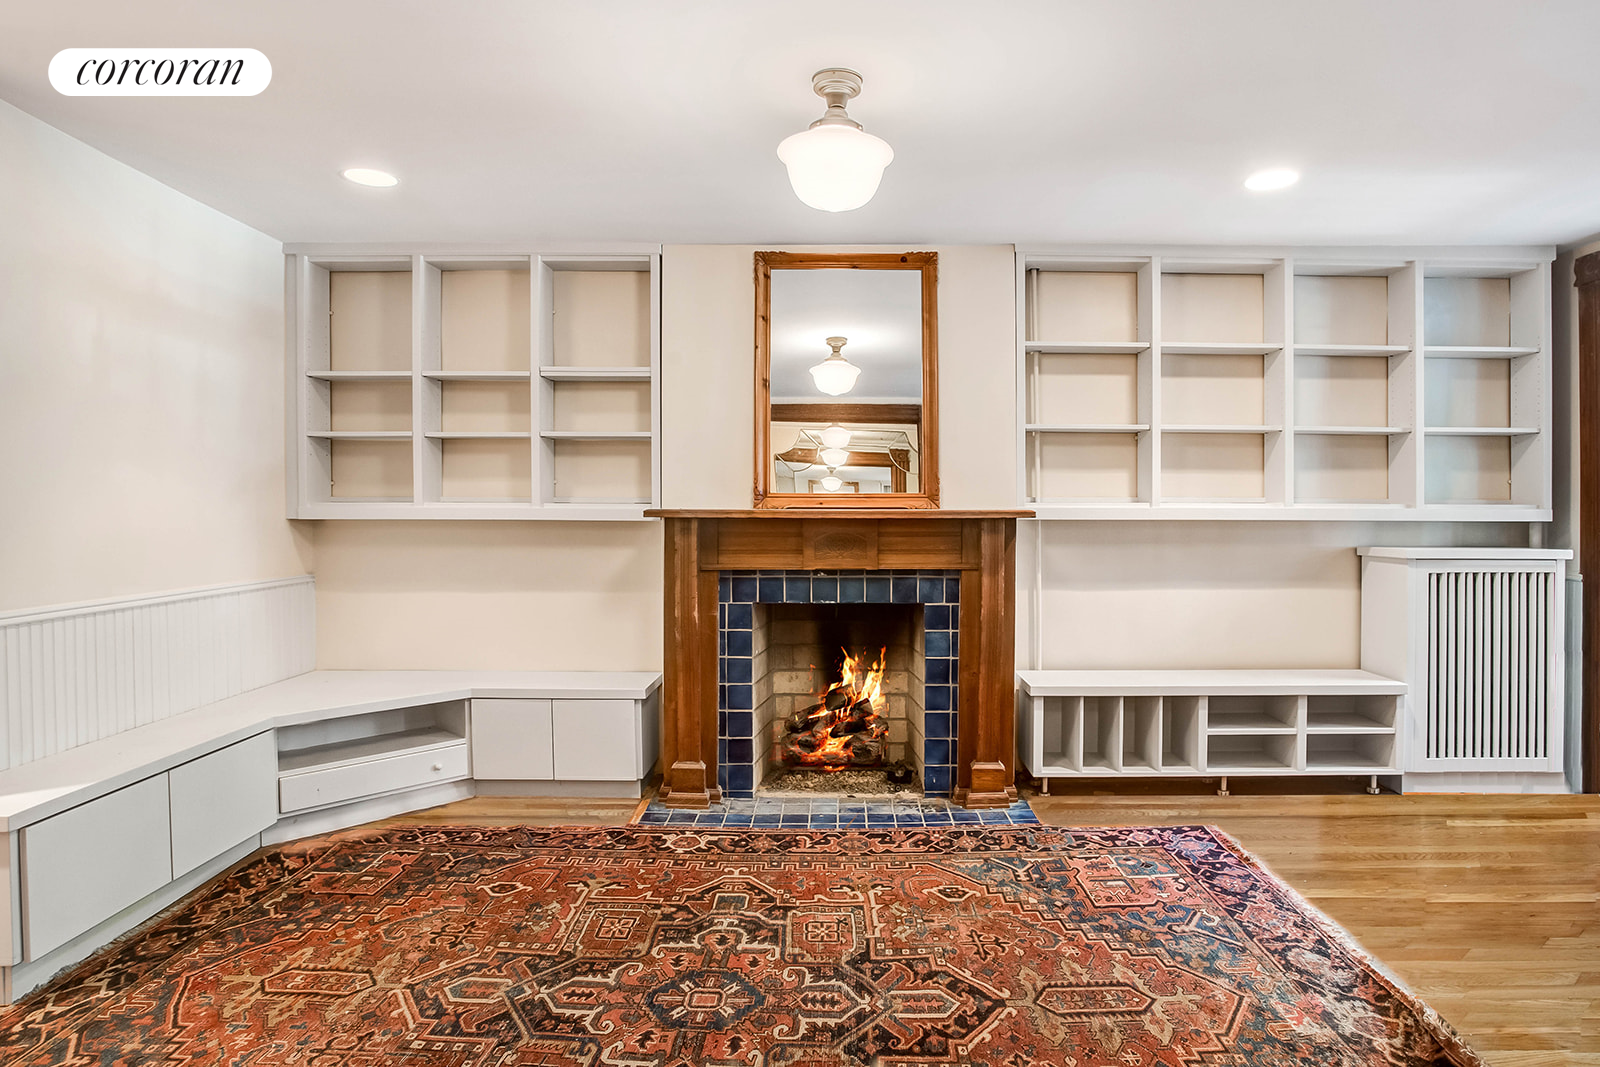 350 1st Street, Stunning parlor has high ceilings & gas fireplace